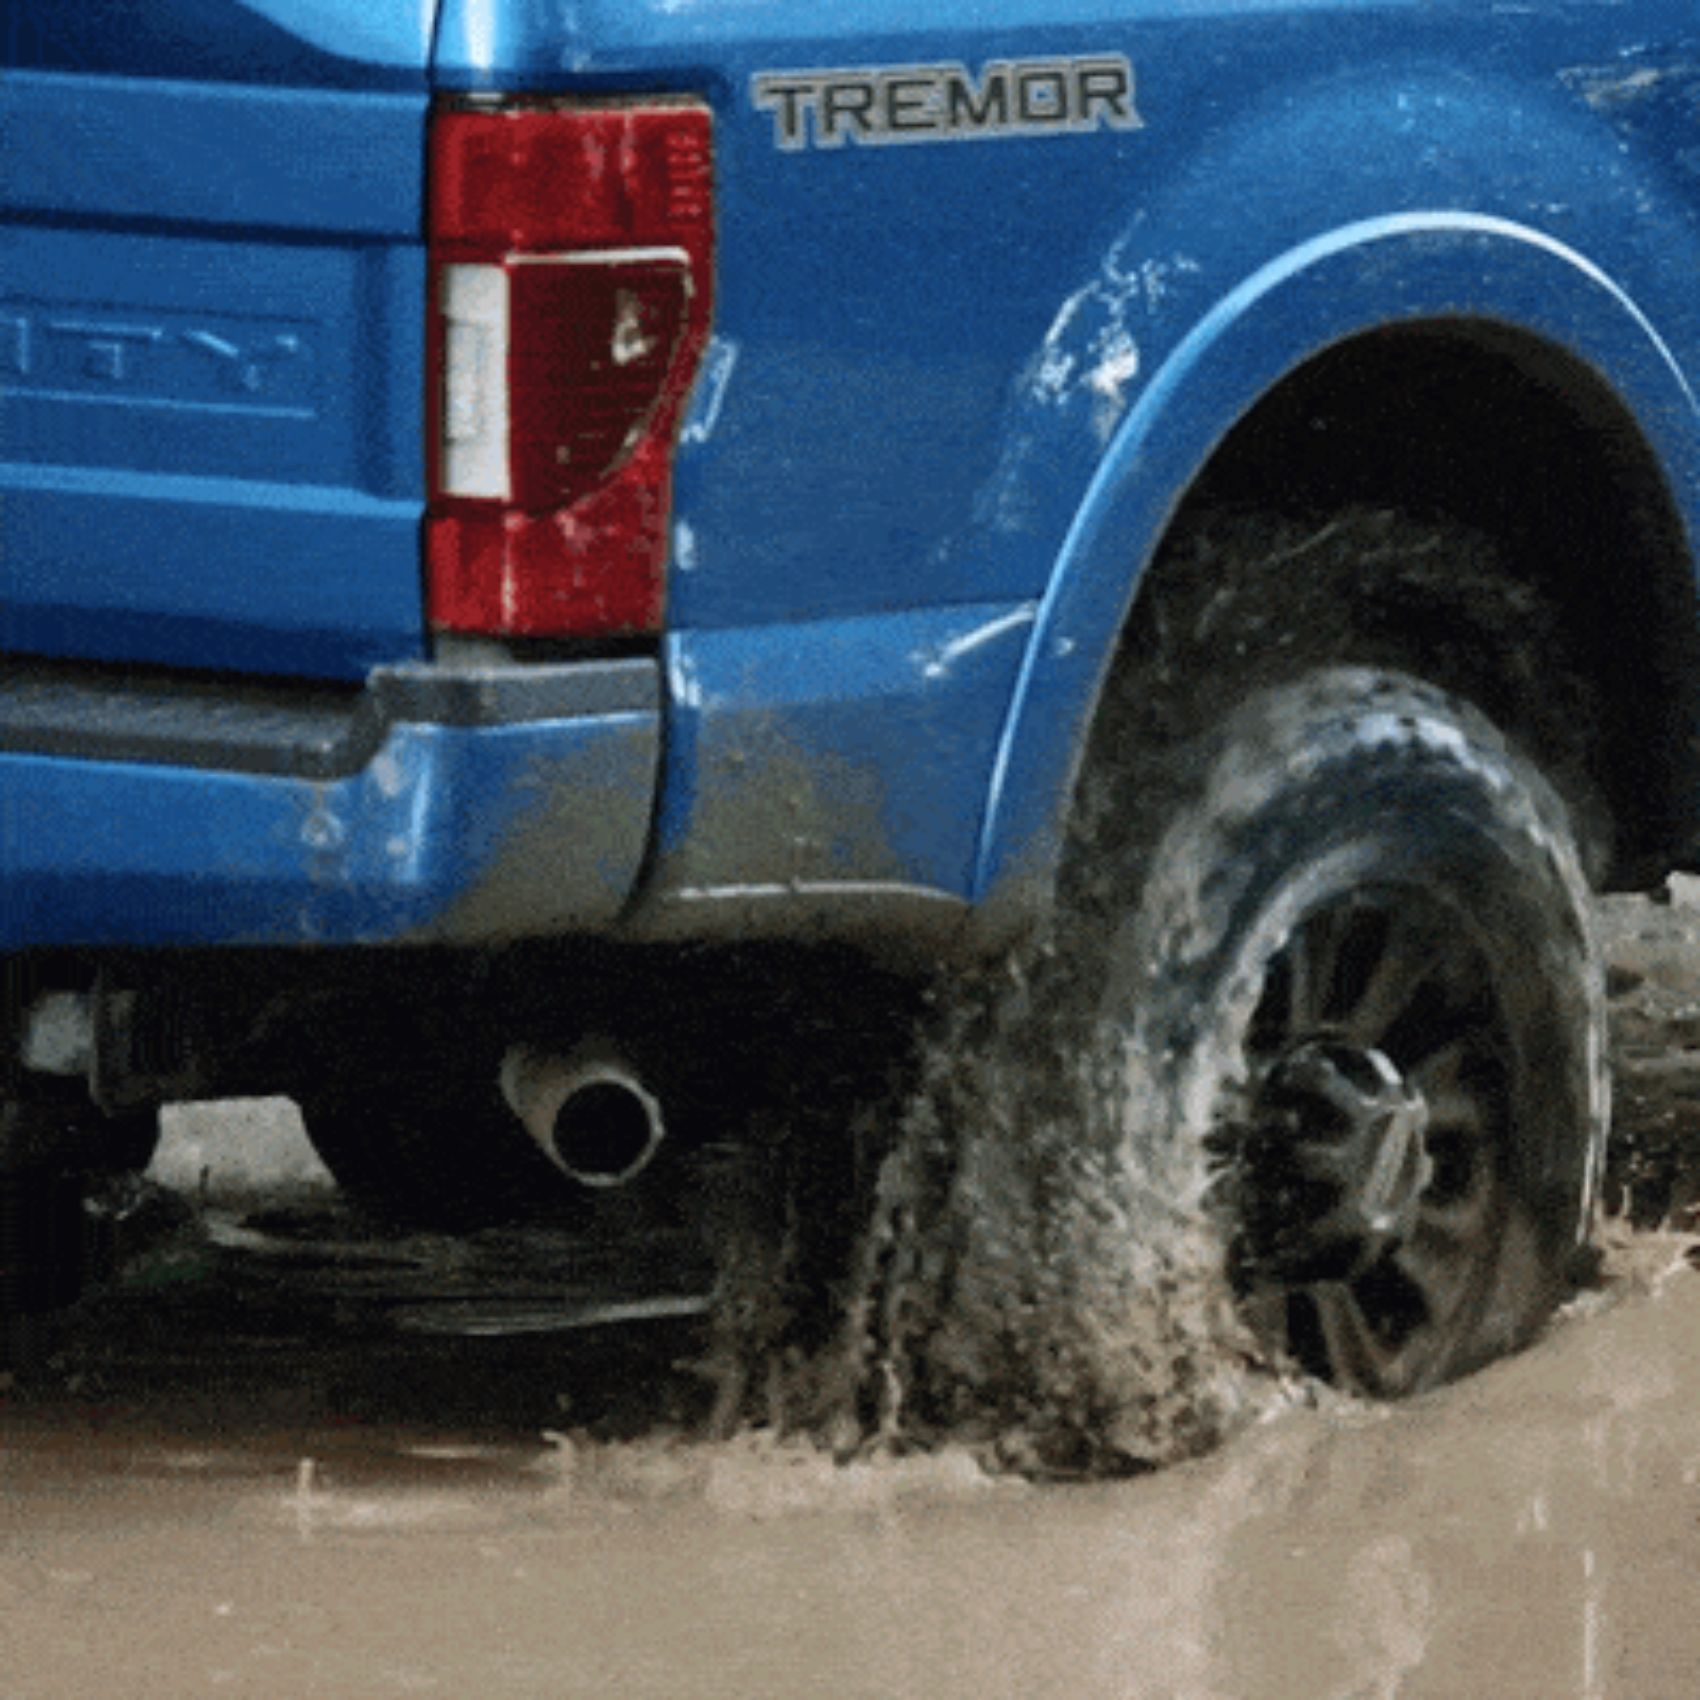 Top Fastest Cars >> Ford Super Duty Tremor Off-Road Package: Bring On The Heavy Equipment